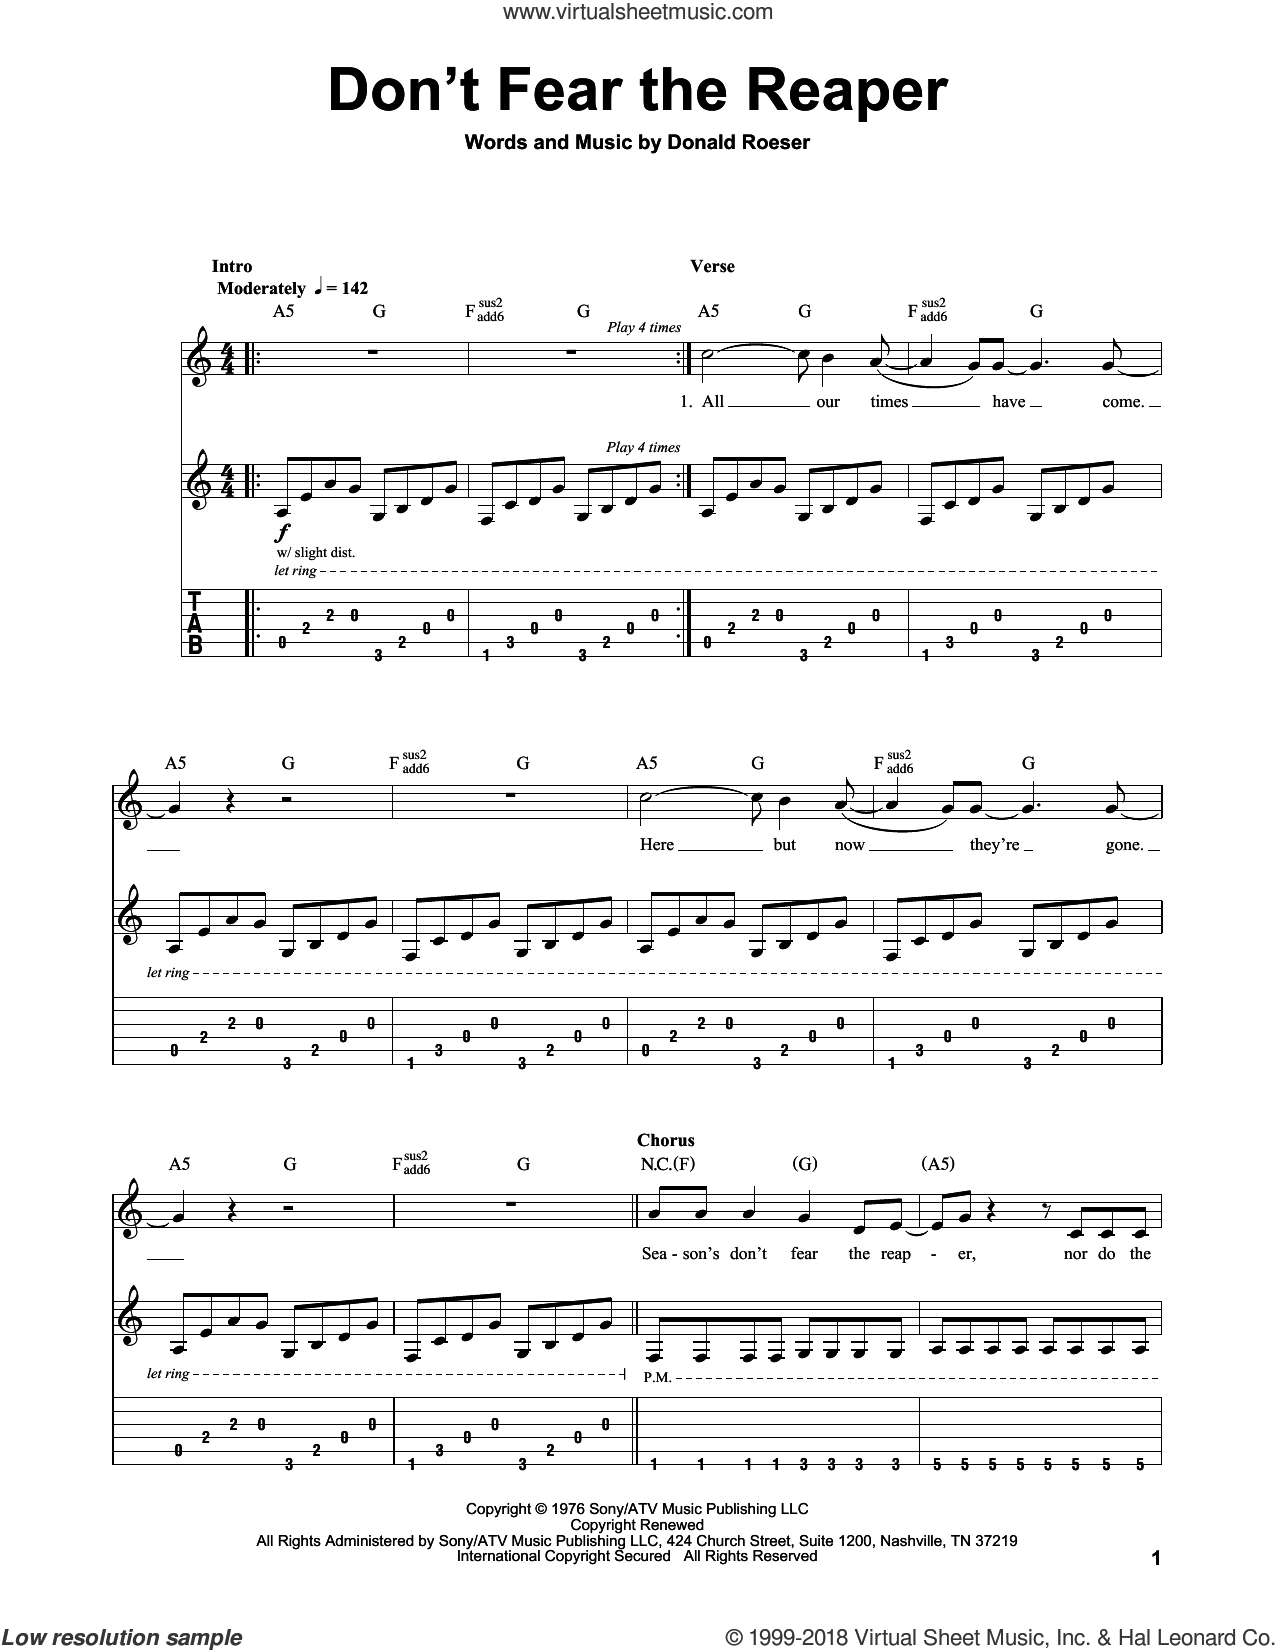 Don't Fear The Reaper sheet music for guitar (tablature, play-along) by Donald Roeser